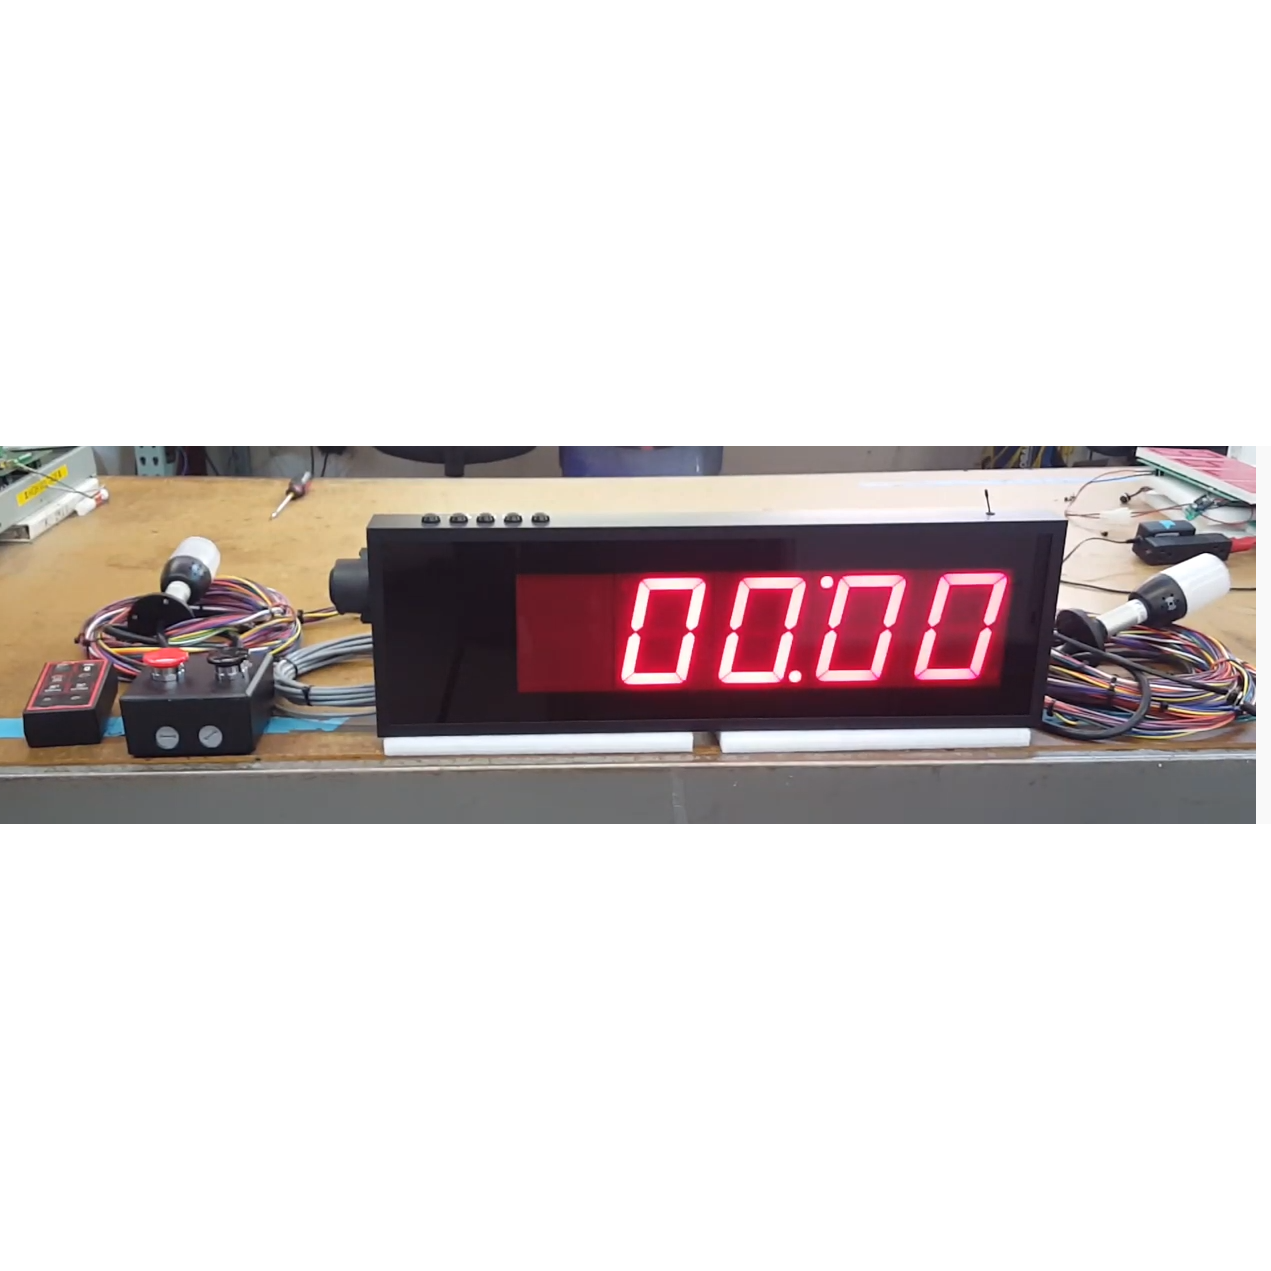 Negative Countdown Timer with ANDON Lights and Audible Indicators